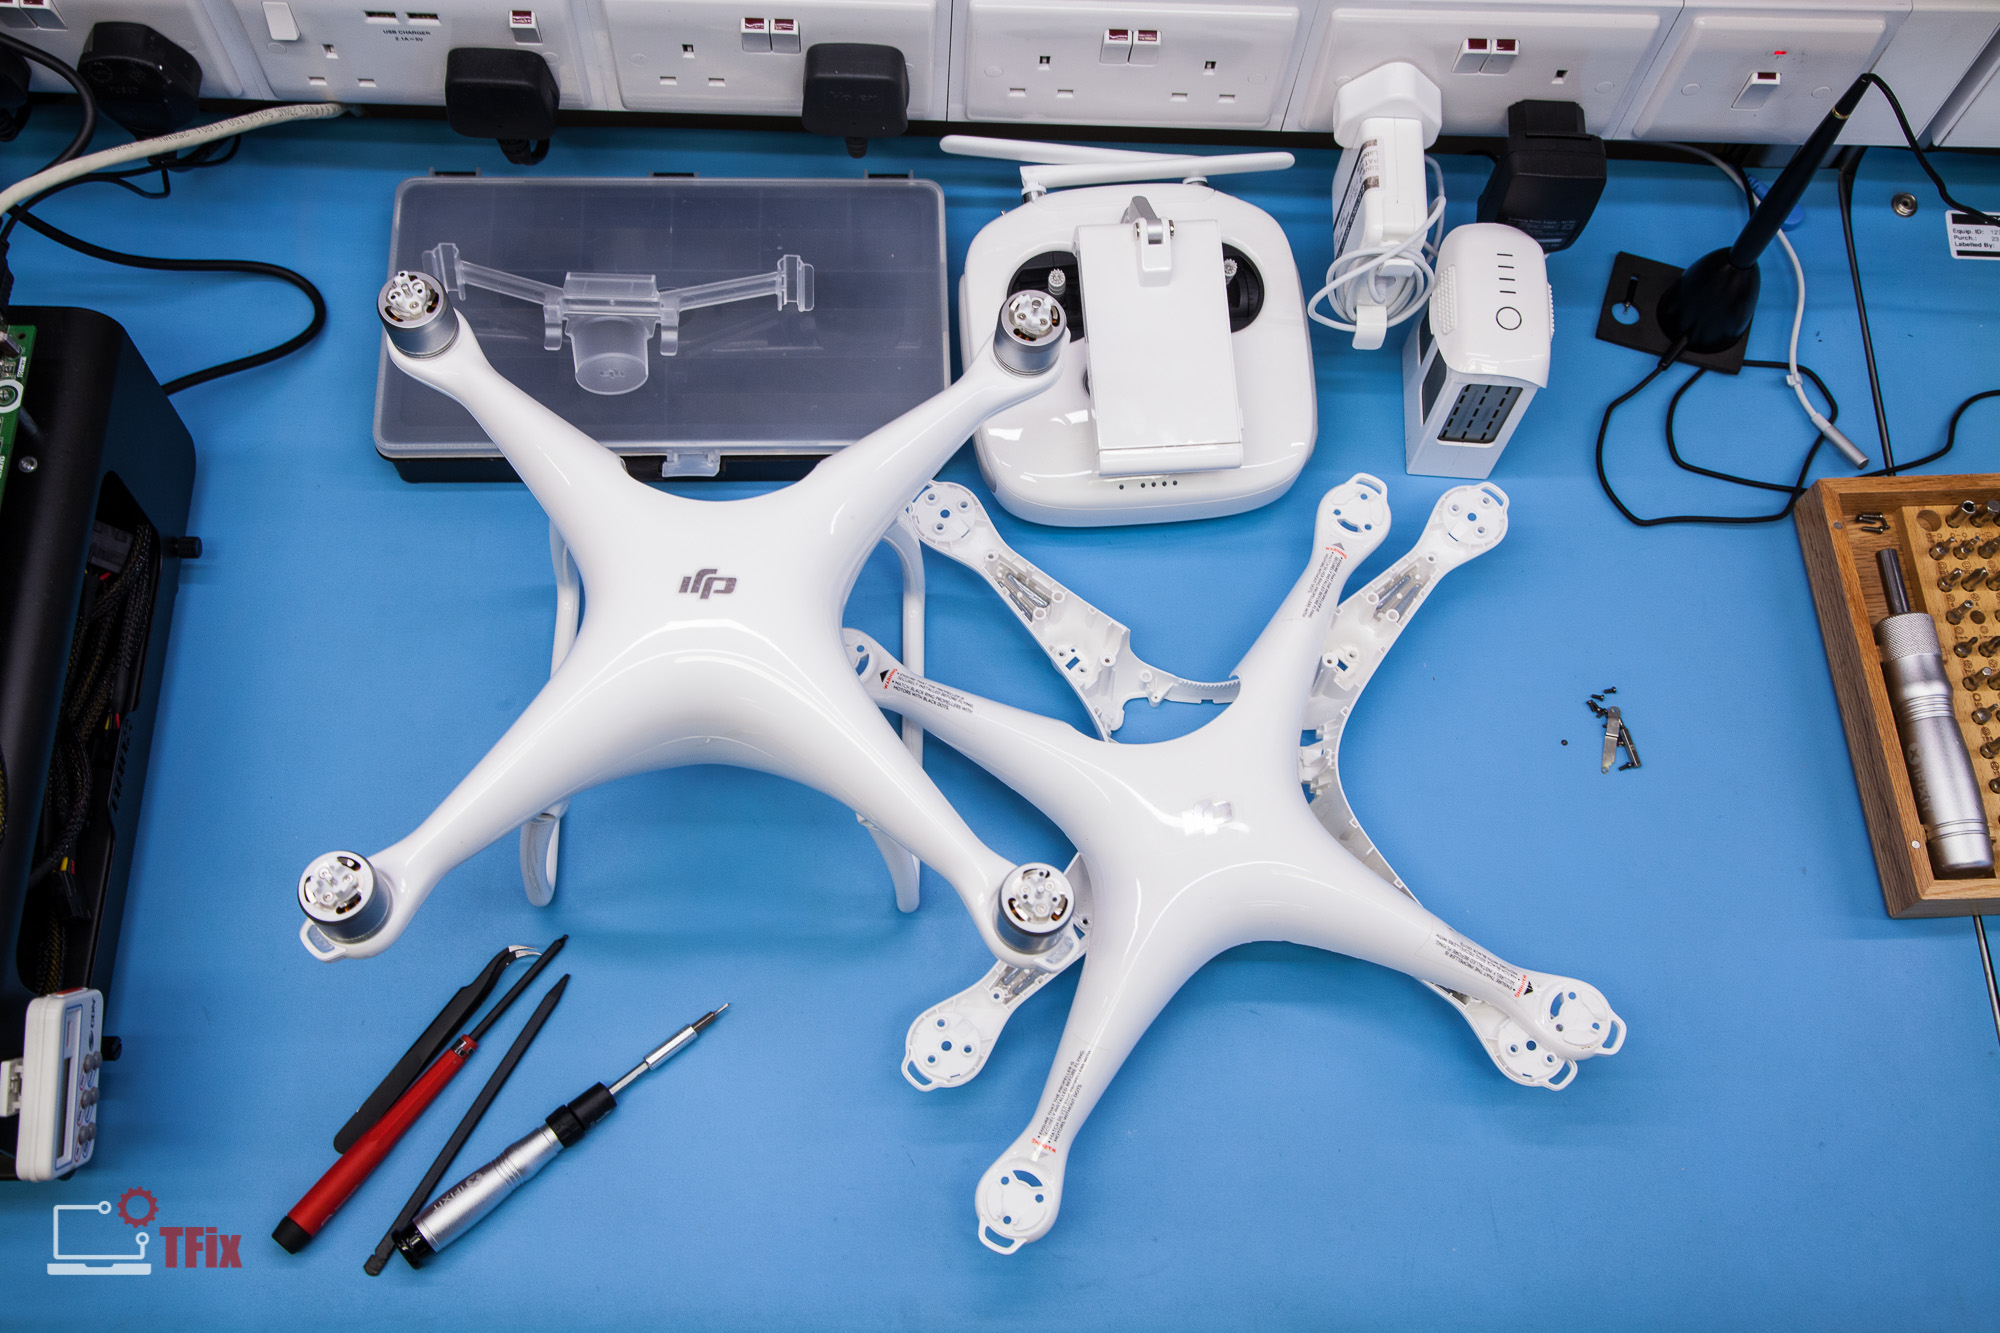 DJI-Phantom-4-Cracked-Shell-Replacement1